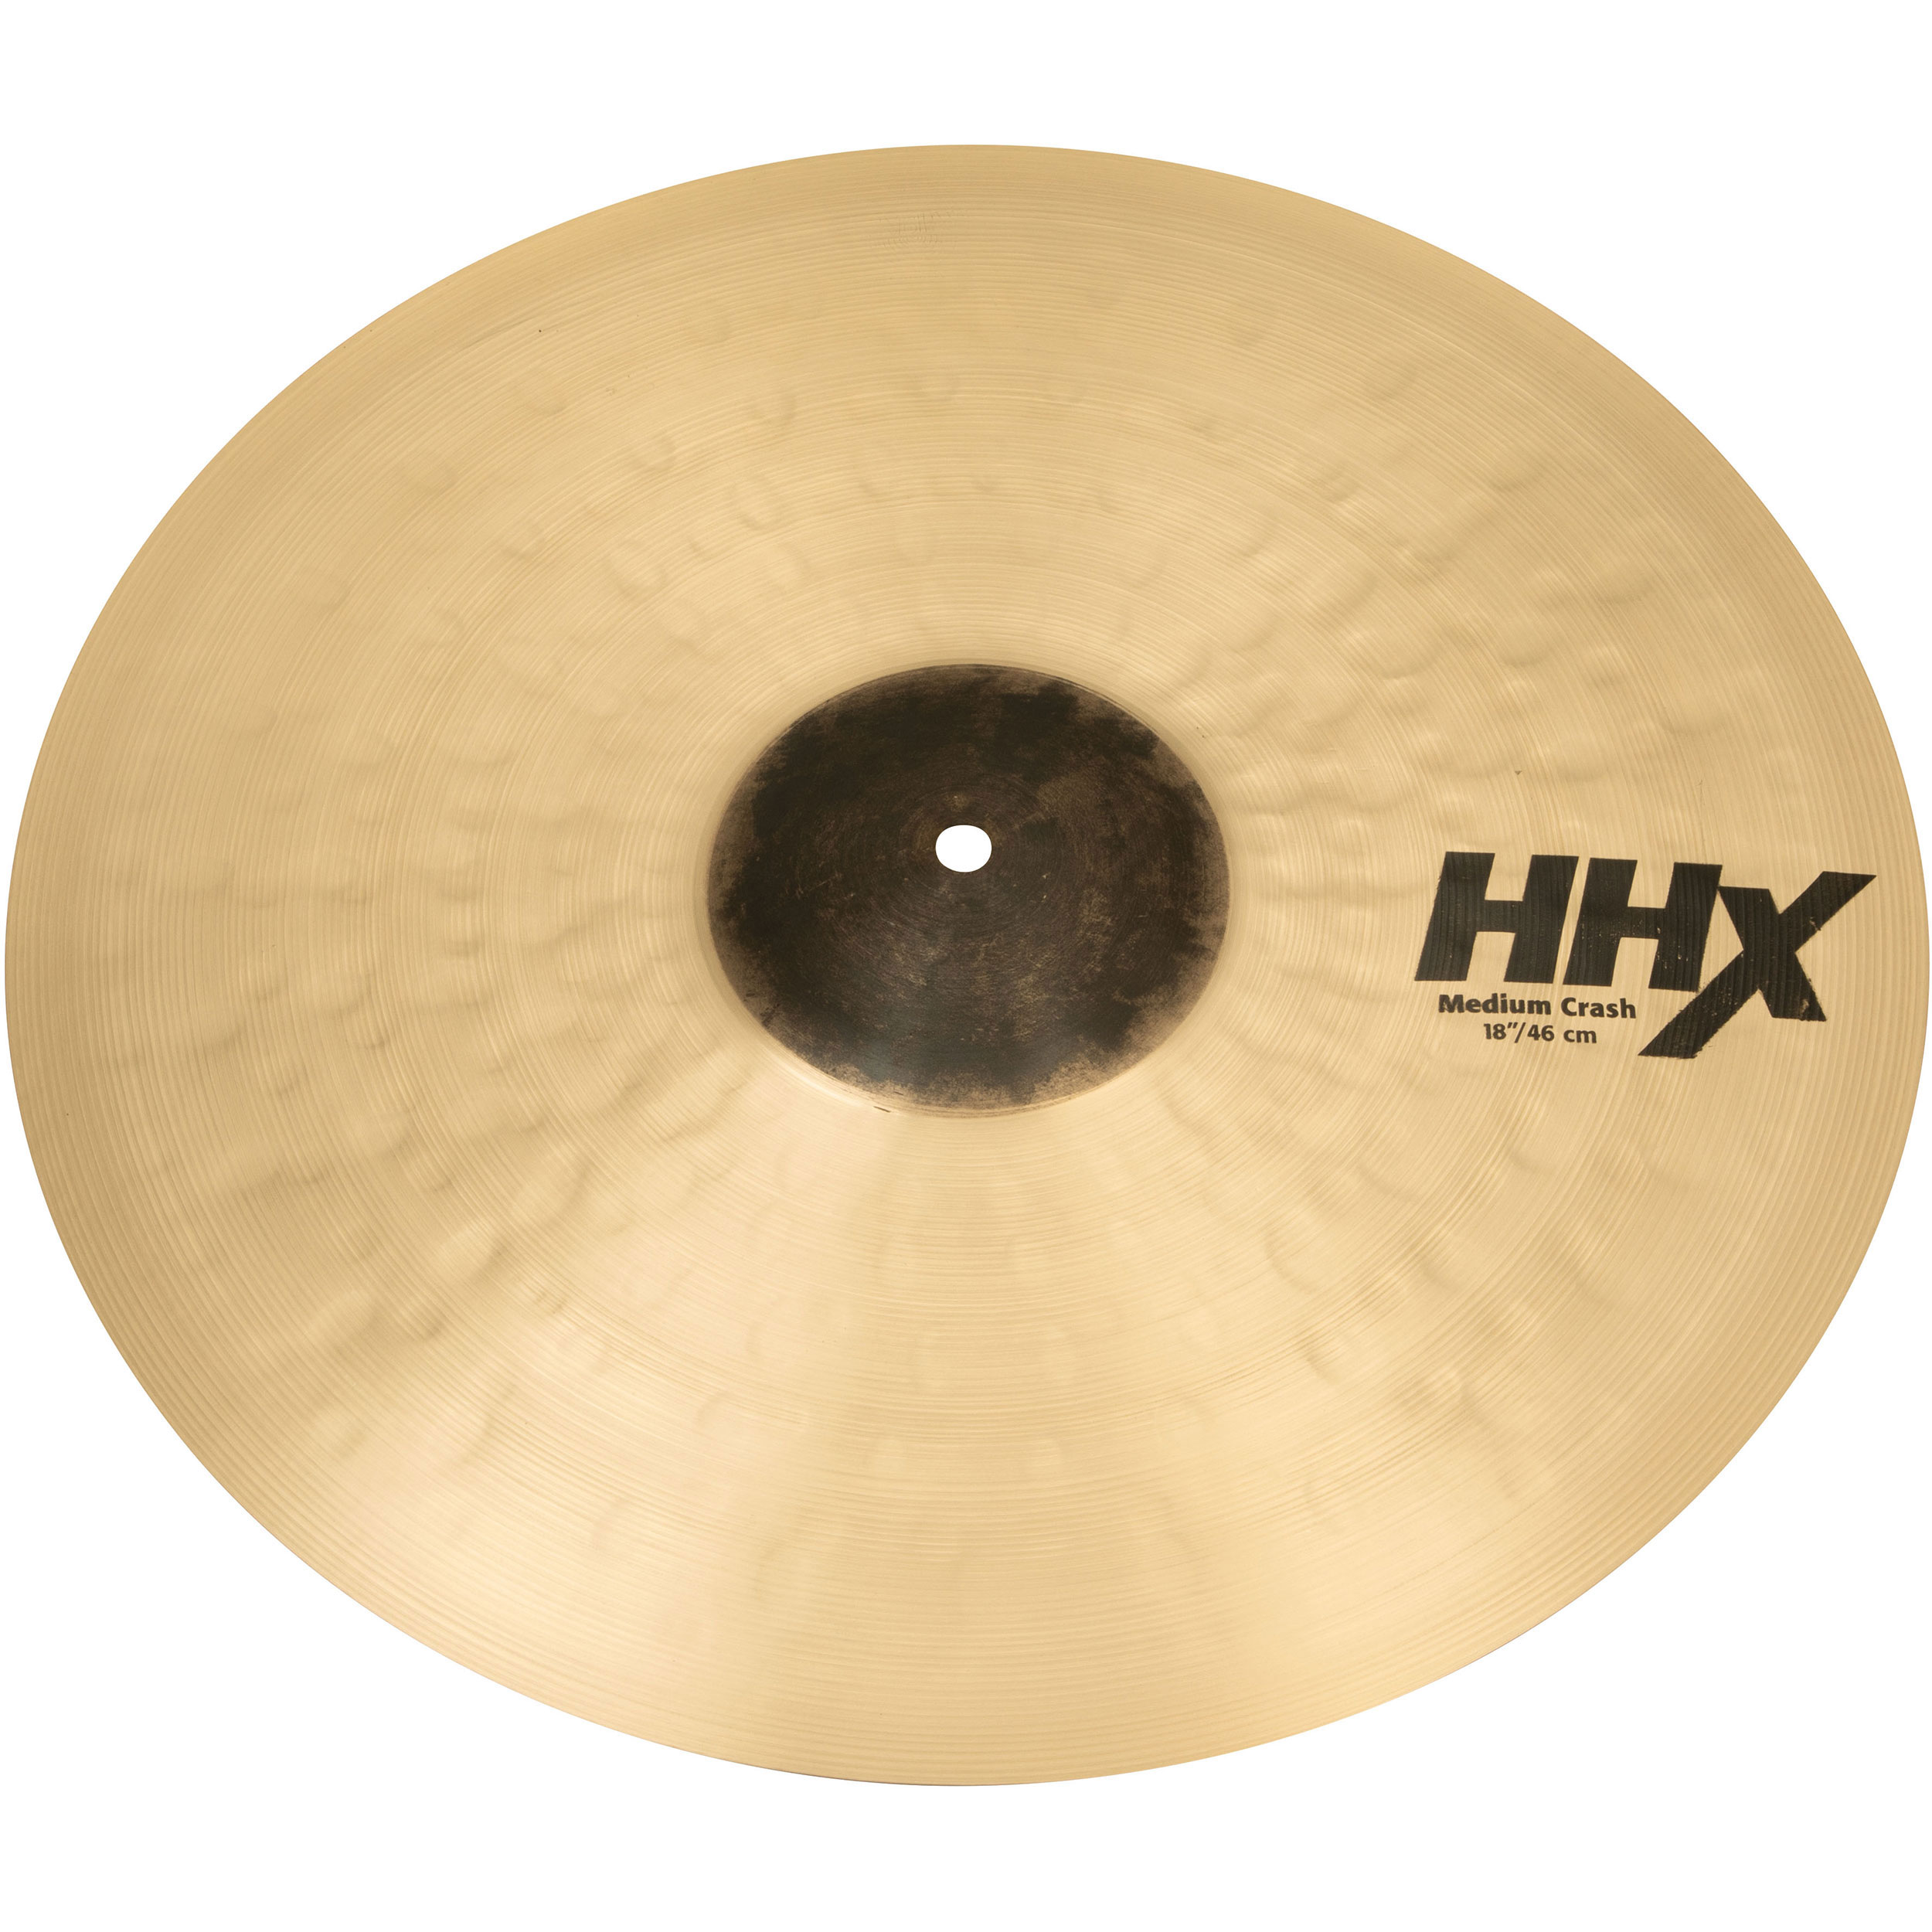 "Sabian 18"" HHX Medium Crash Cymbal"